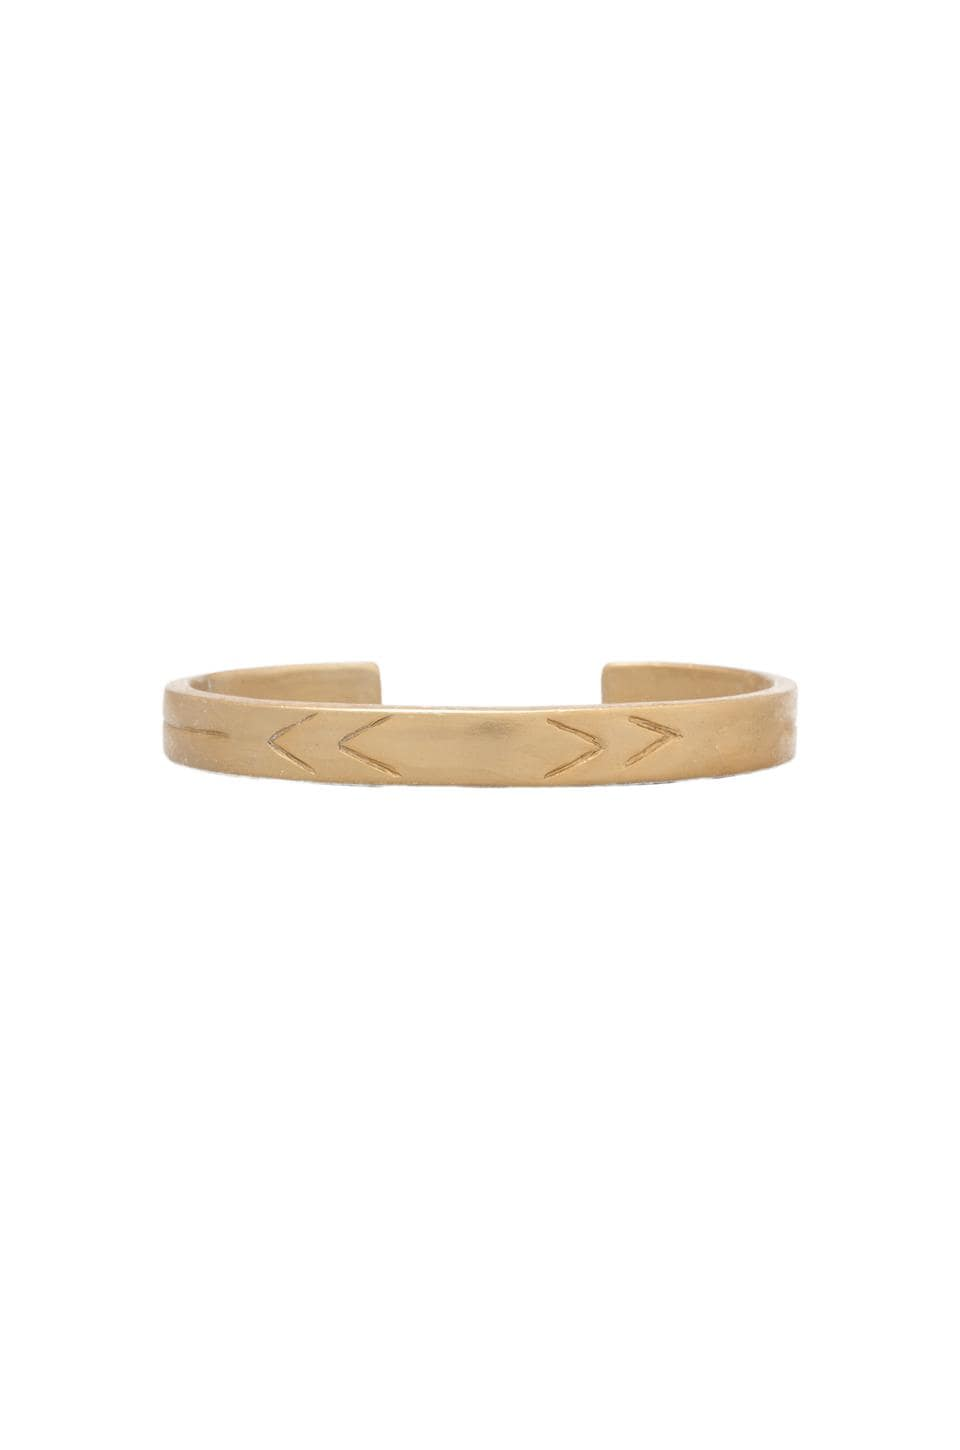 2 Bandits Texas Skies Bangle in Gold